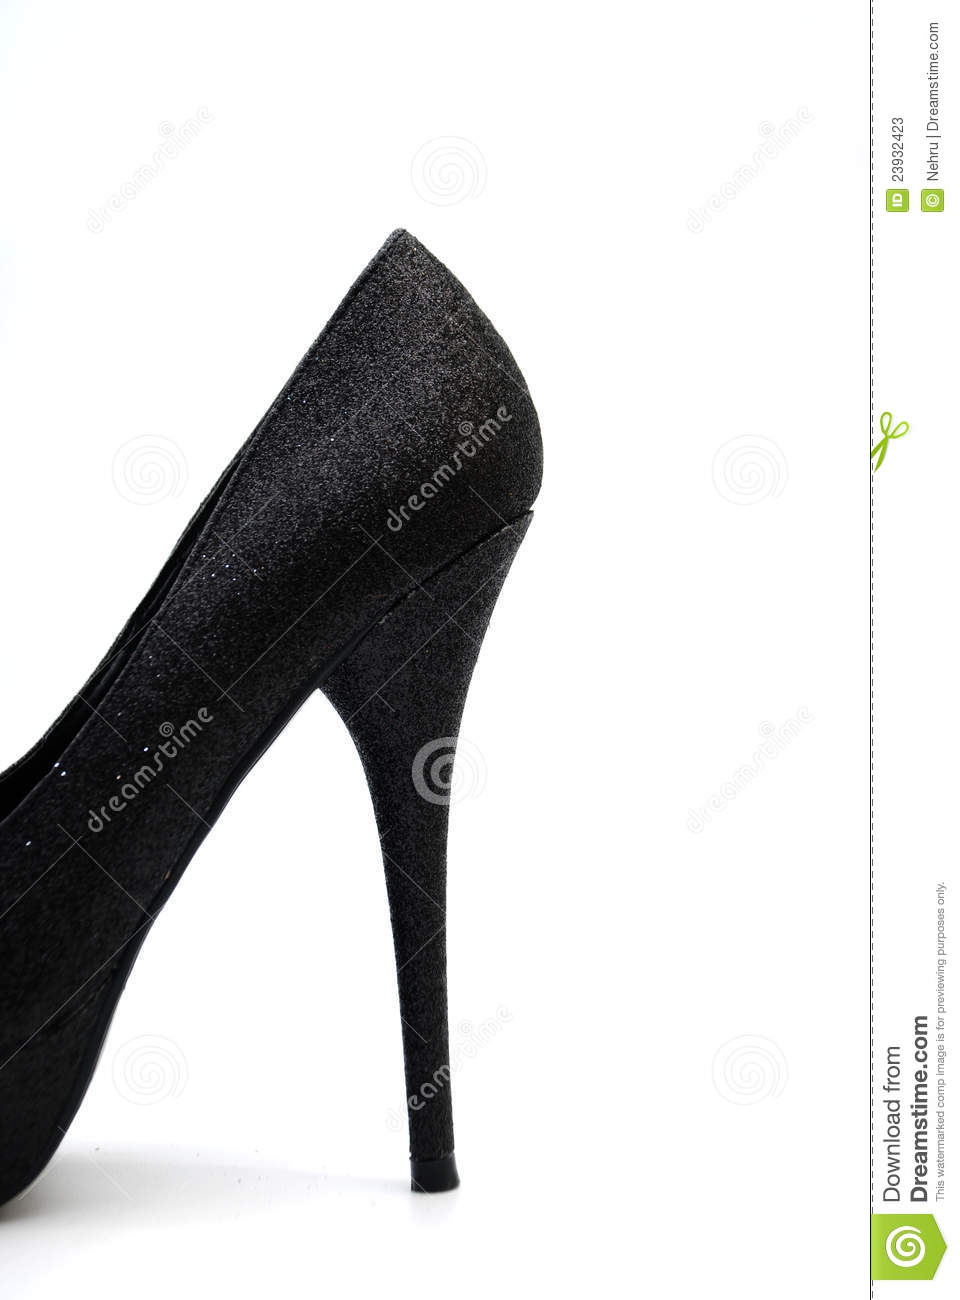 More similar stock images of ` High heels shoe